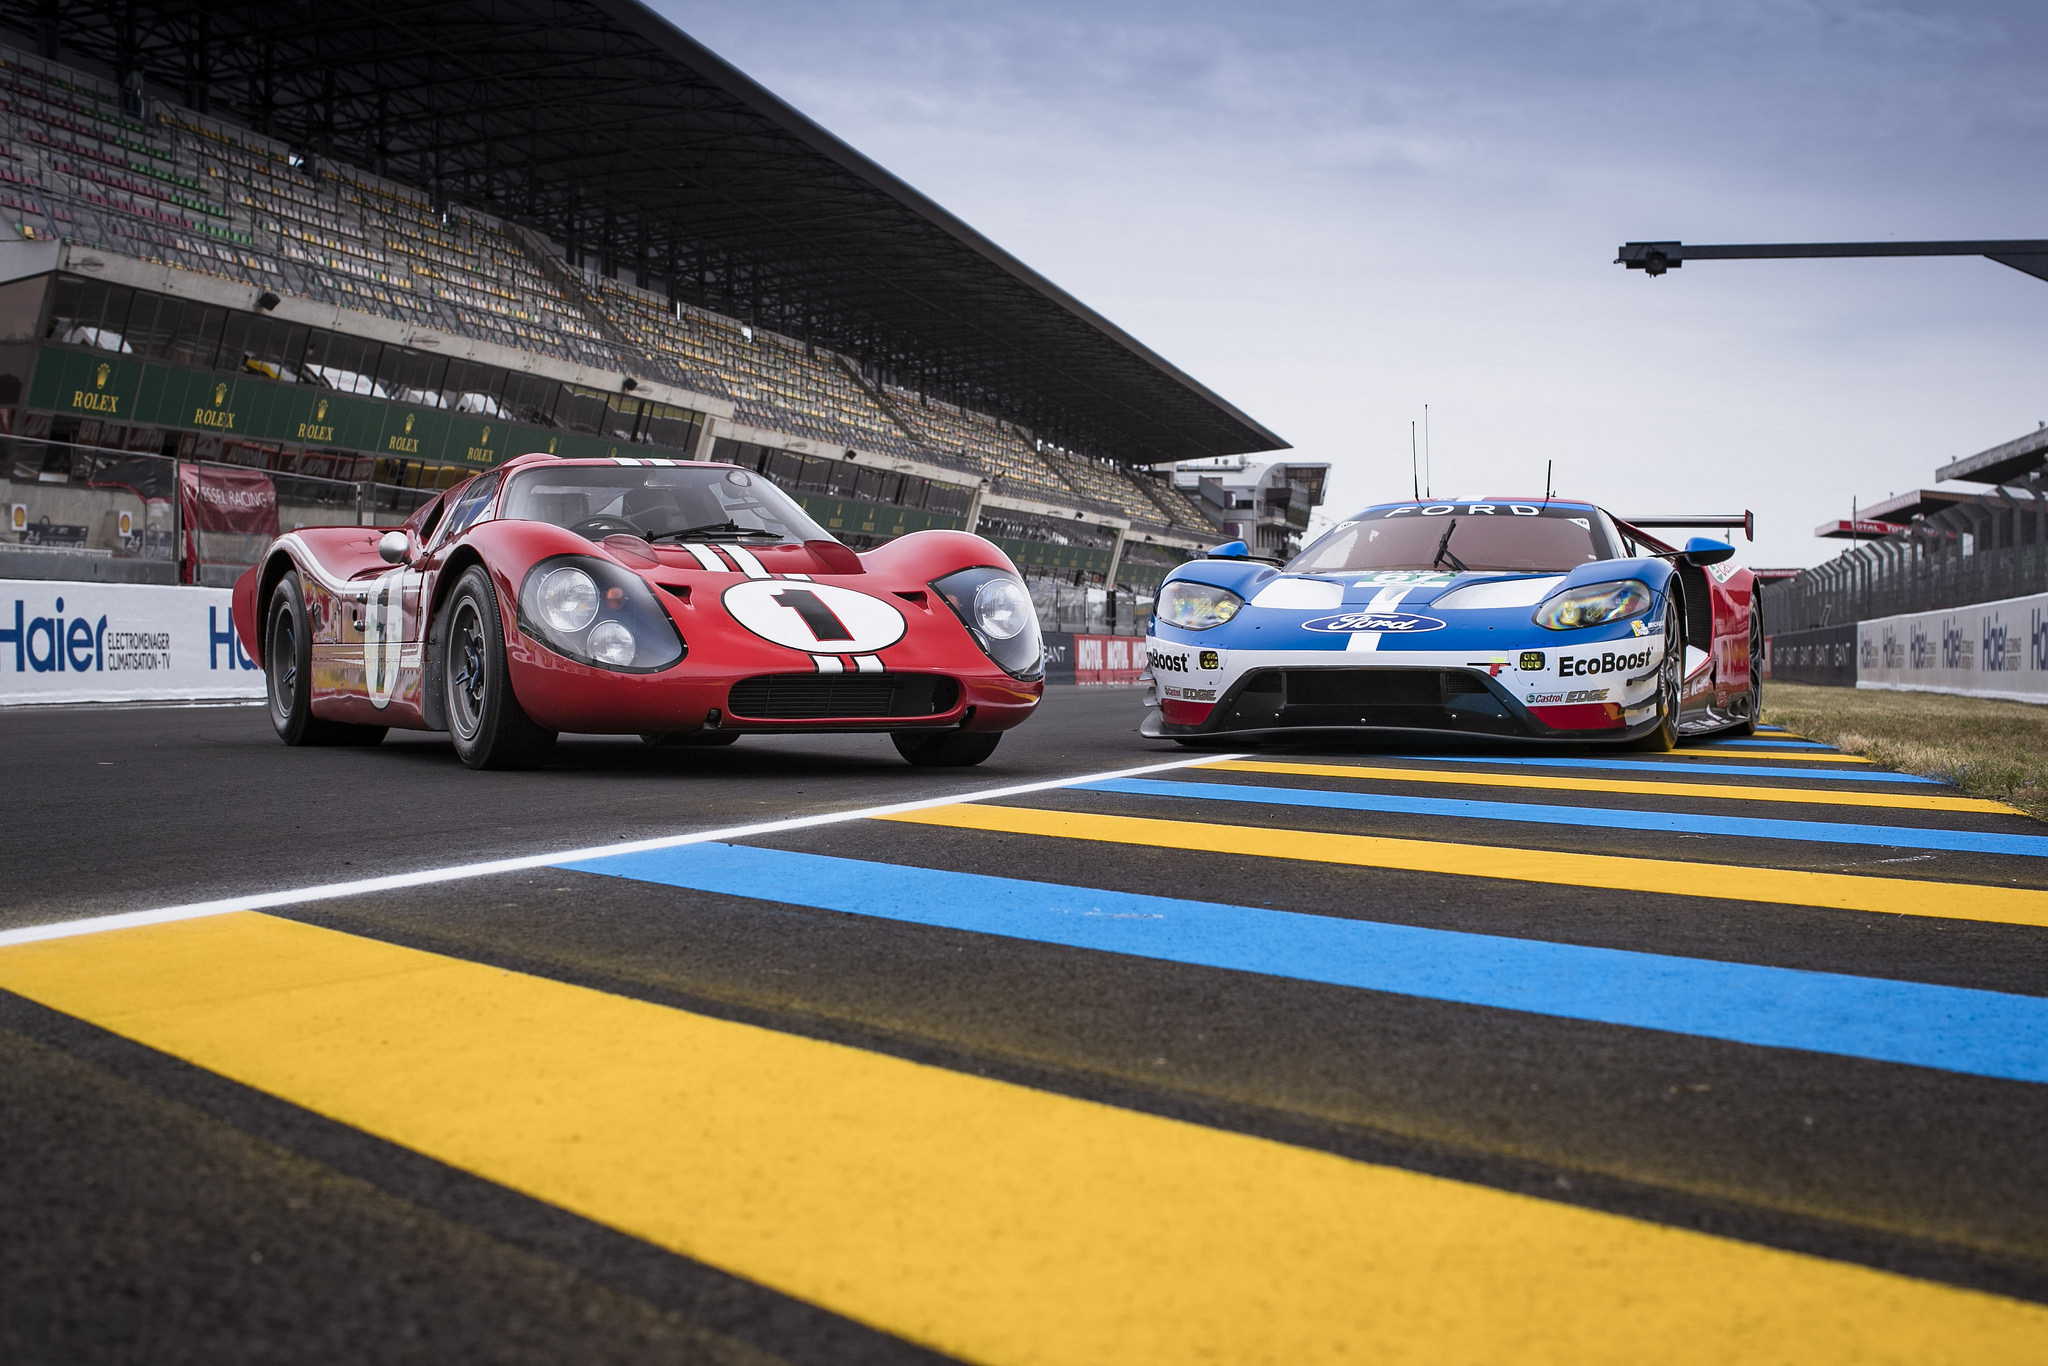 24 heures du mans les ford gt ont rendez vous avec l. Black Bedroom Furniture Sets. Home Design Ideas